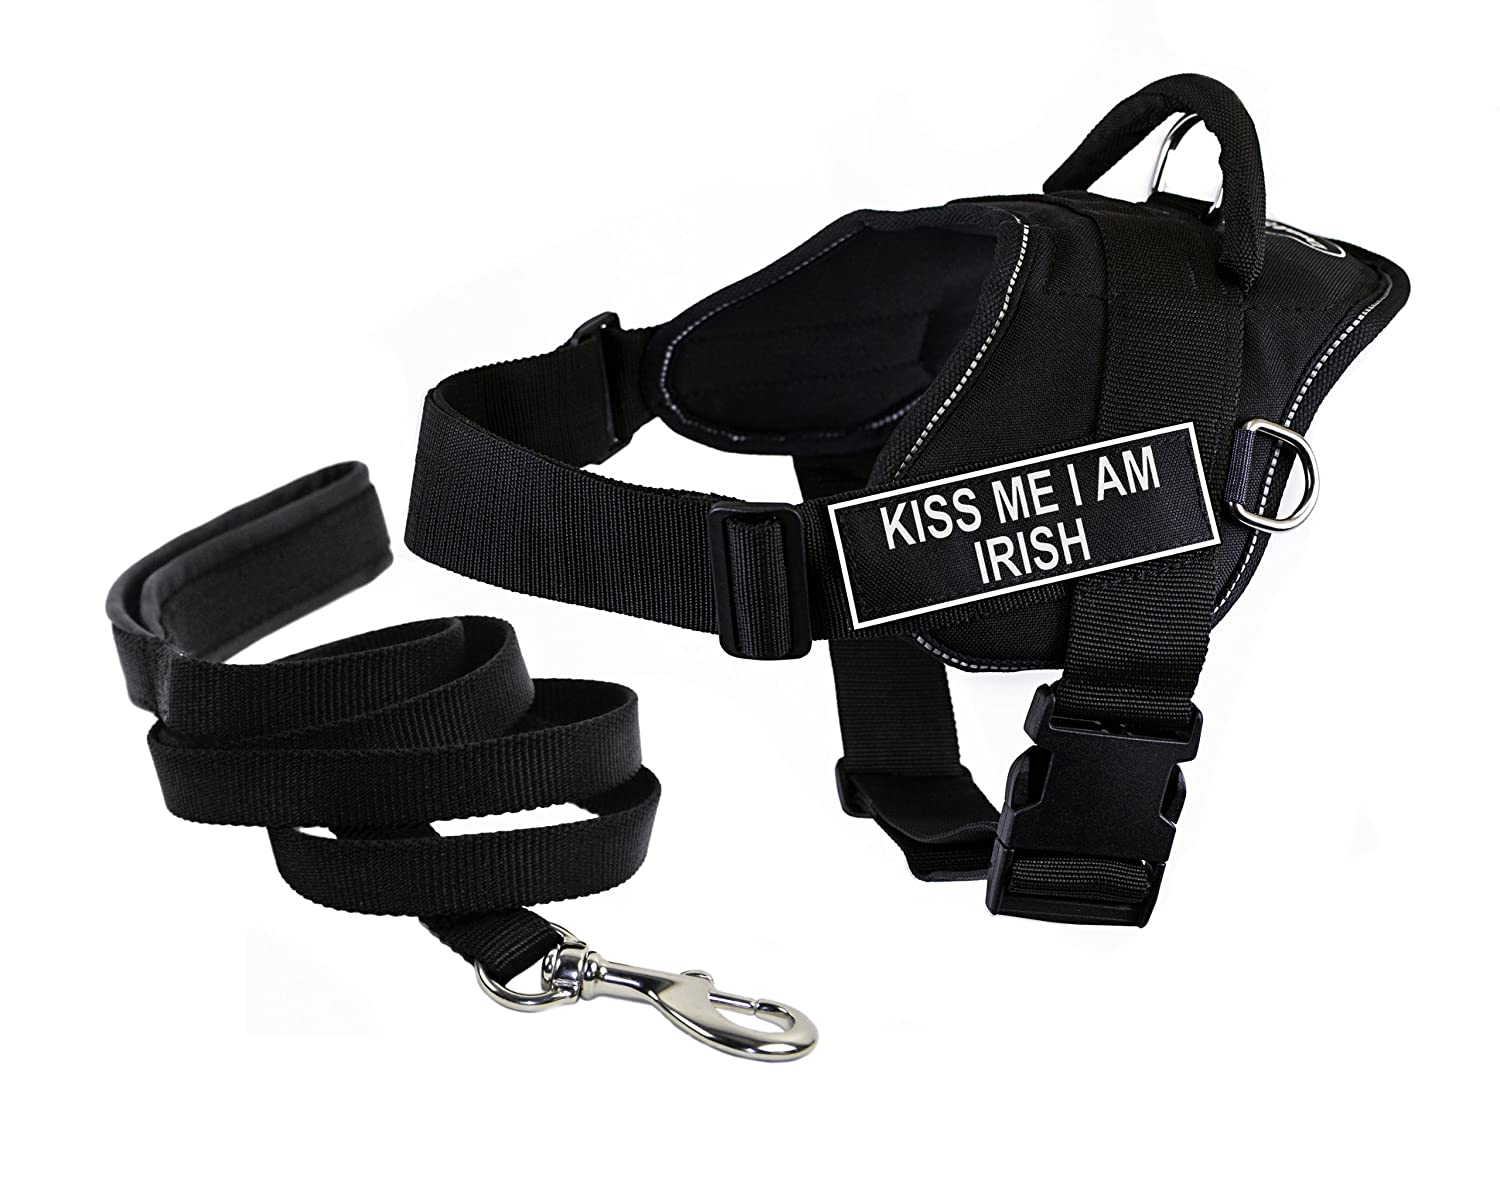 Dean & Tyler's DT Fun KISS ME I AM IRISH Harness with Reflective Trim, Small, And 6 ft Padded Puppy Leash.